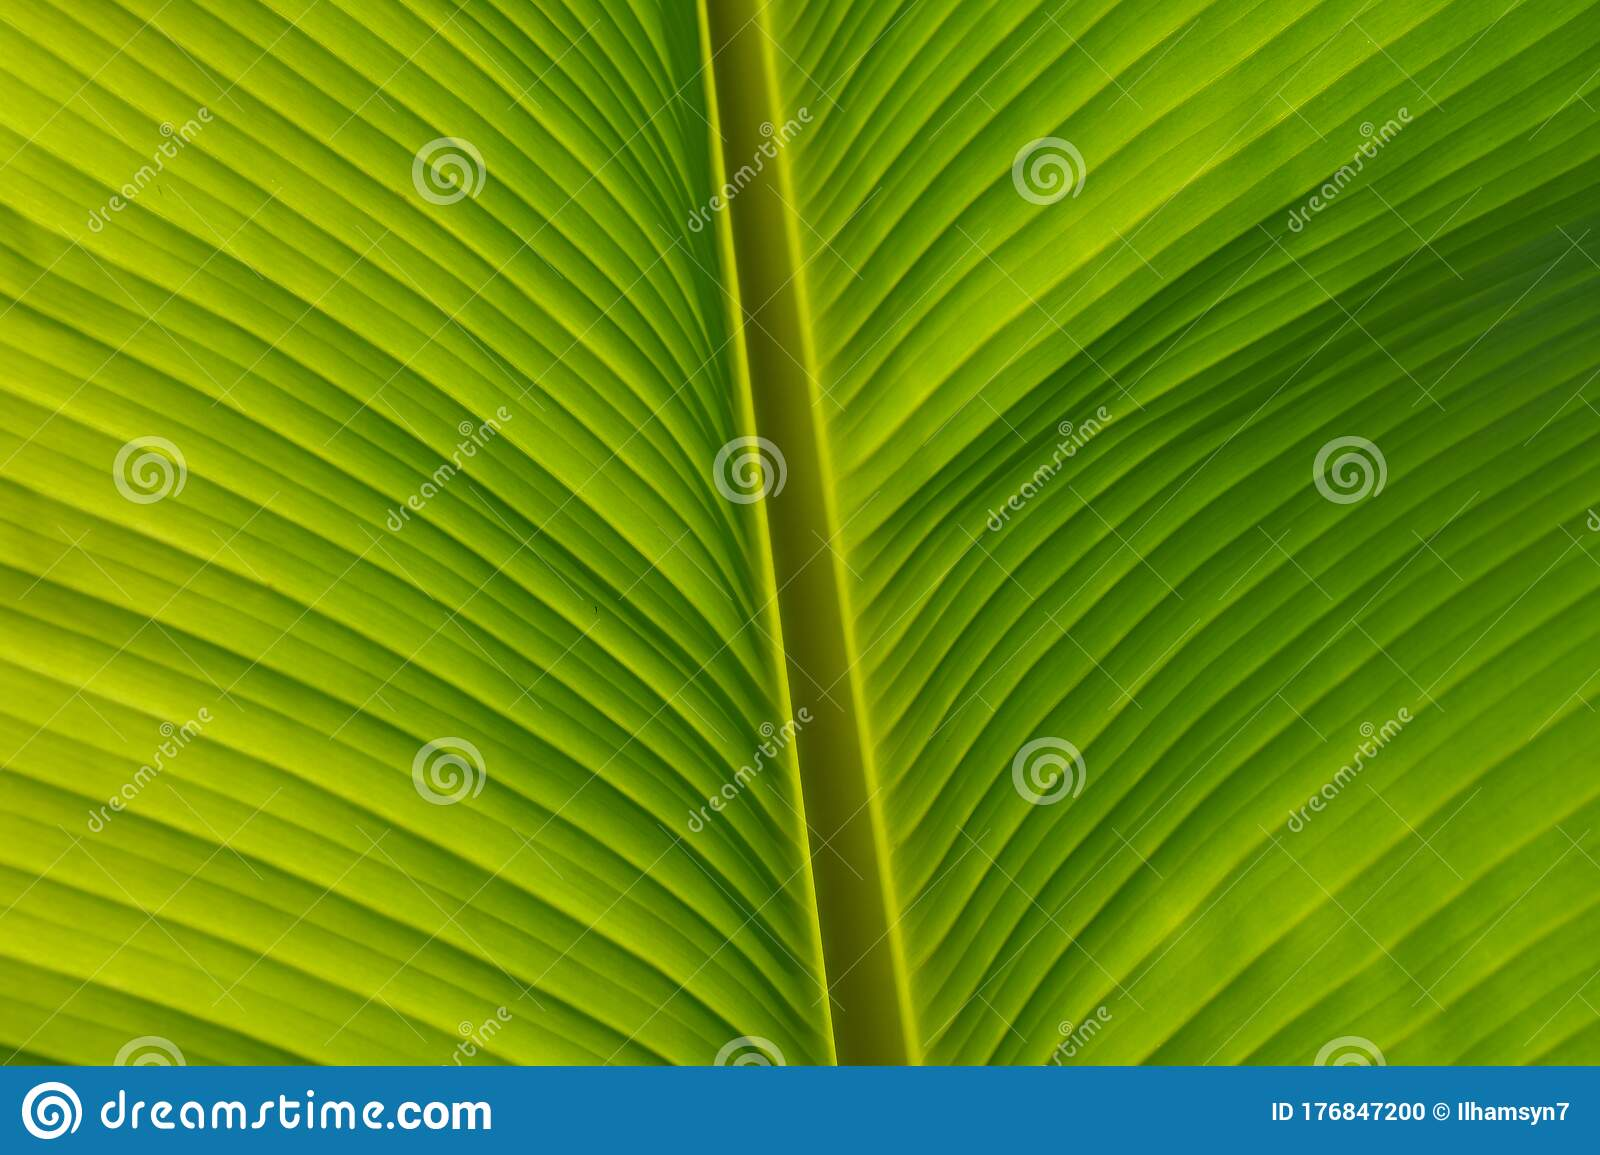 Tropical Banana Leaf Texture Large Palm Foliage Natural Fresh Green Background Stock Photo Image Of Detail Large 176847200 About 23% of these are artificial plant. tropical banana leaf texture large palm foliage natural fresh green background stock photo image of detail large 176847200